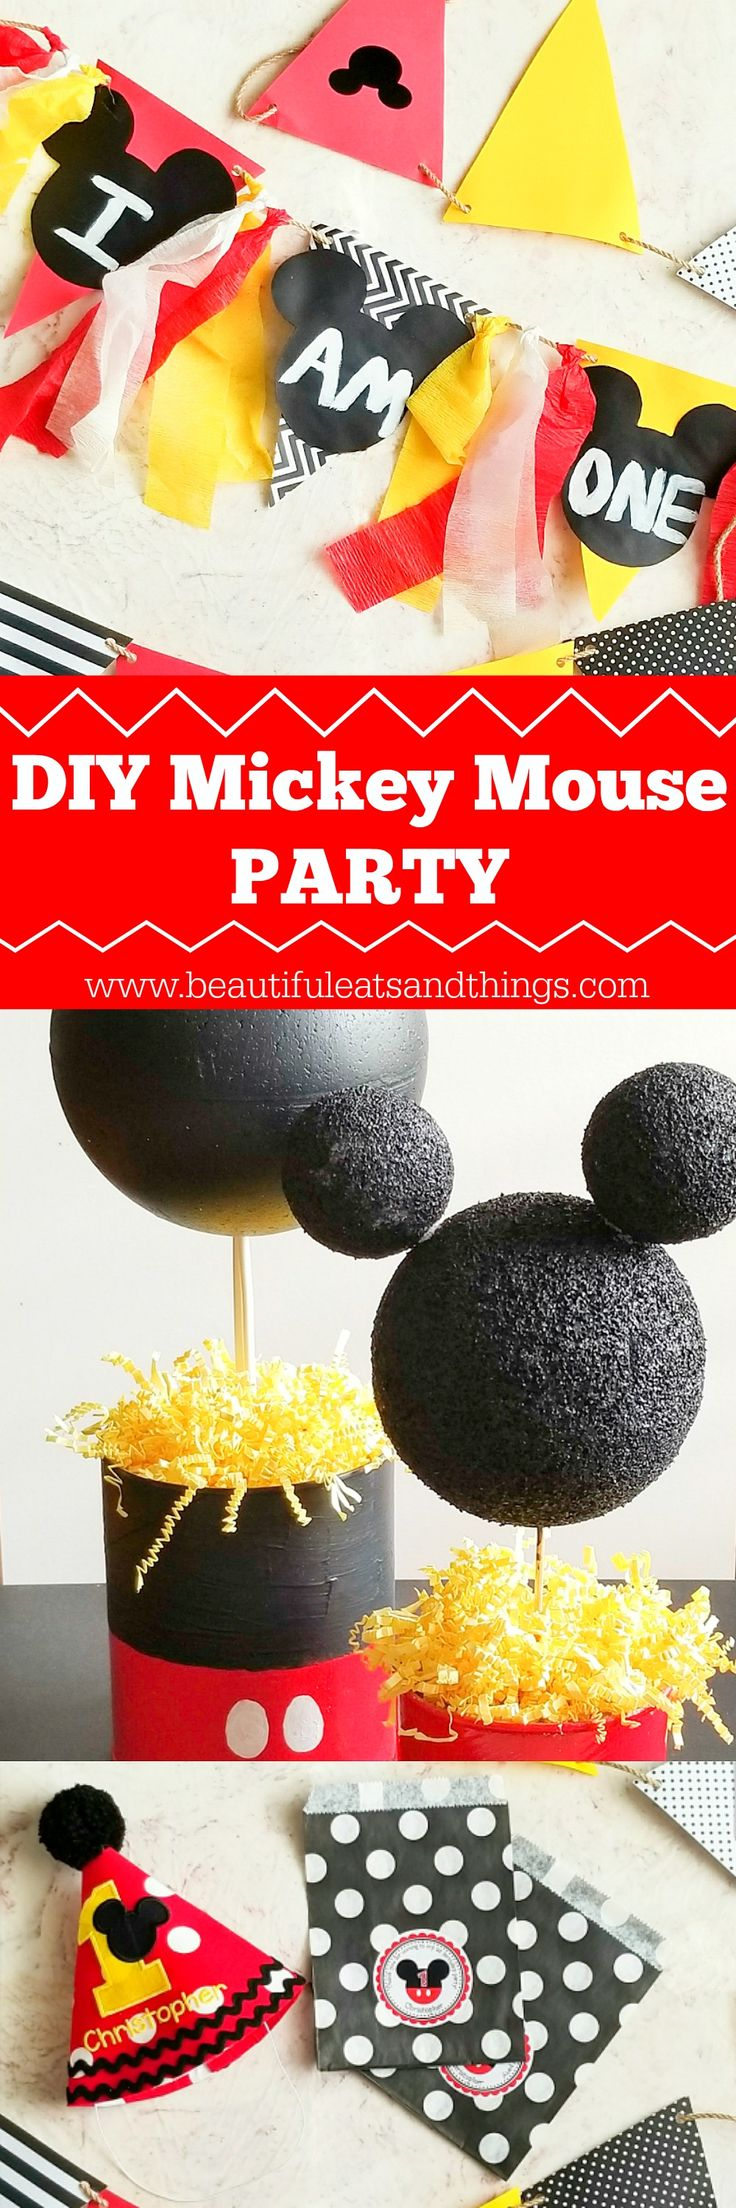 Cheap & easy DIY Mickey Mouse Party ideas! Save money and plan the ULTIMATE party with these ideas! mickey mouse | diy party ideas | cheap party ideas | first birthday party | mickey mouse clubhouse | smashcake